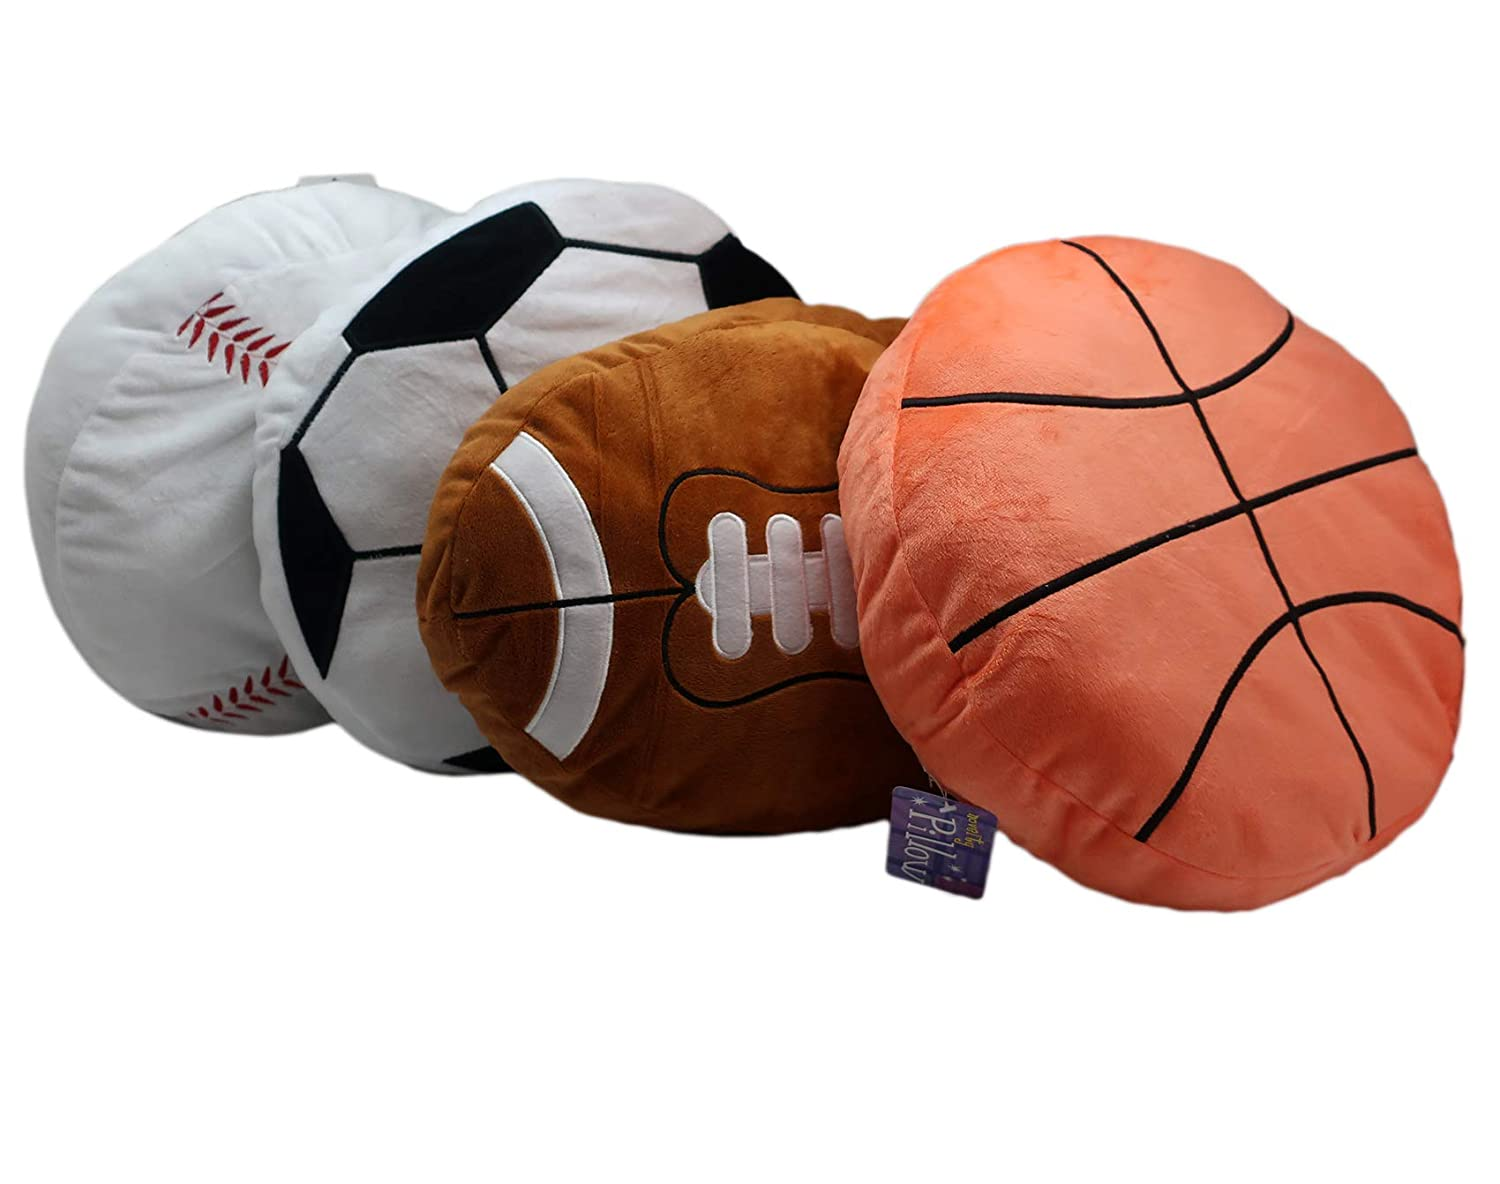 """1 Basketball Forest /& Twelfth Kids Sports Ball Plush Pillows Set of Four 16/"""" Sports Ball Plushies Includes 1 Baseball RIN Set of 4 Sports Balls and 1 Football Pillow Plush 1 Soccer Ball"""